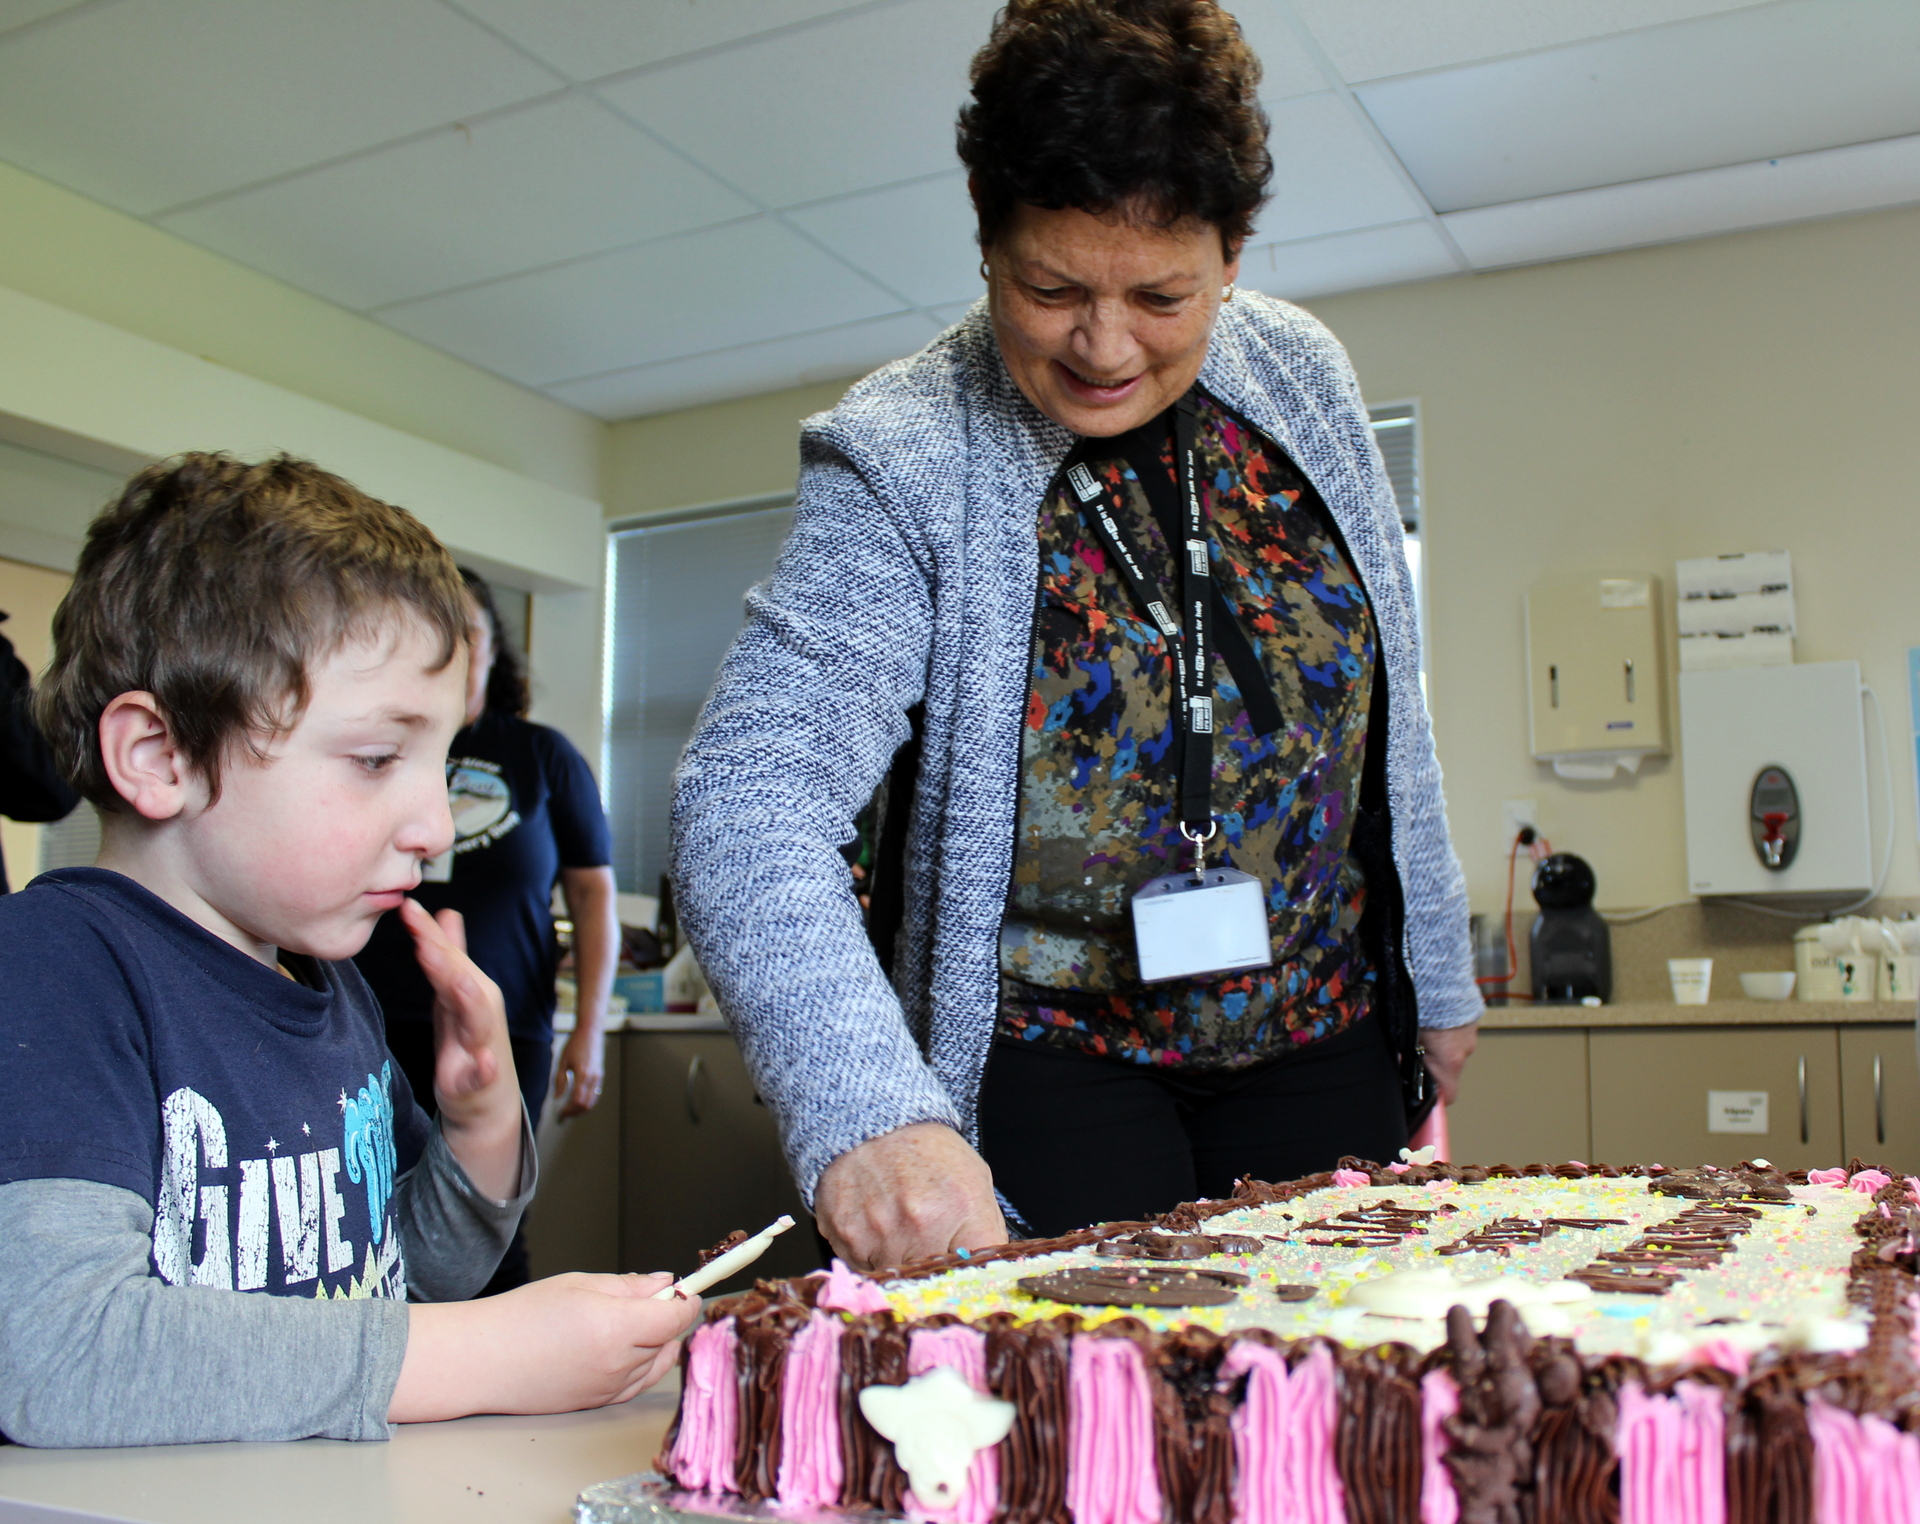 Countdown Kids Hospital Appeal in Whangārei launched with haka and cake